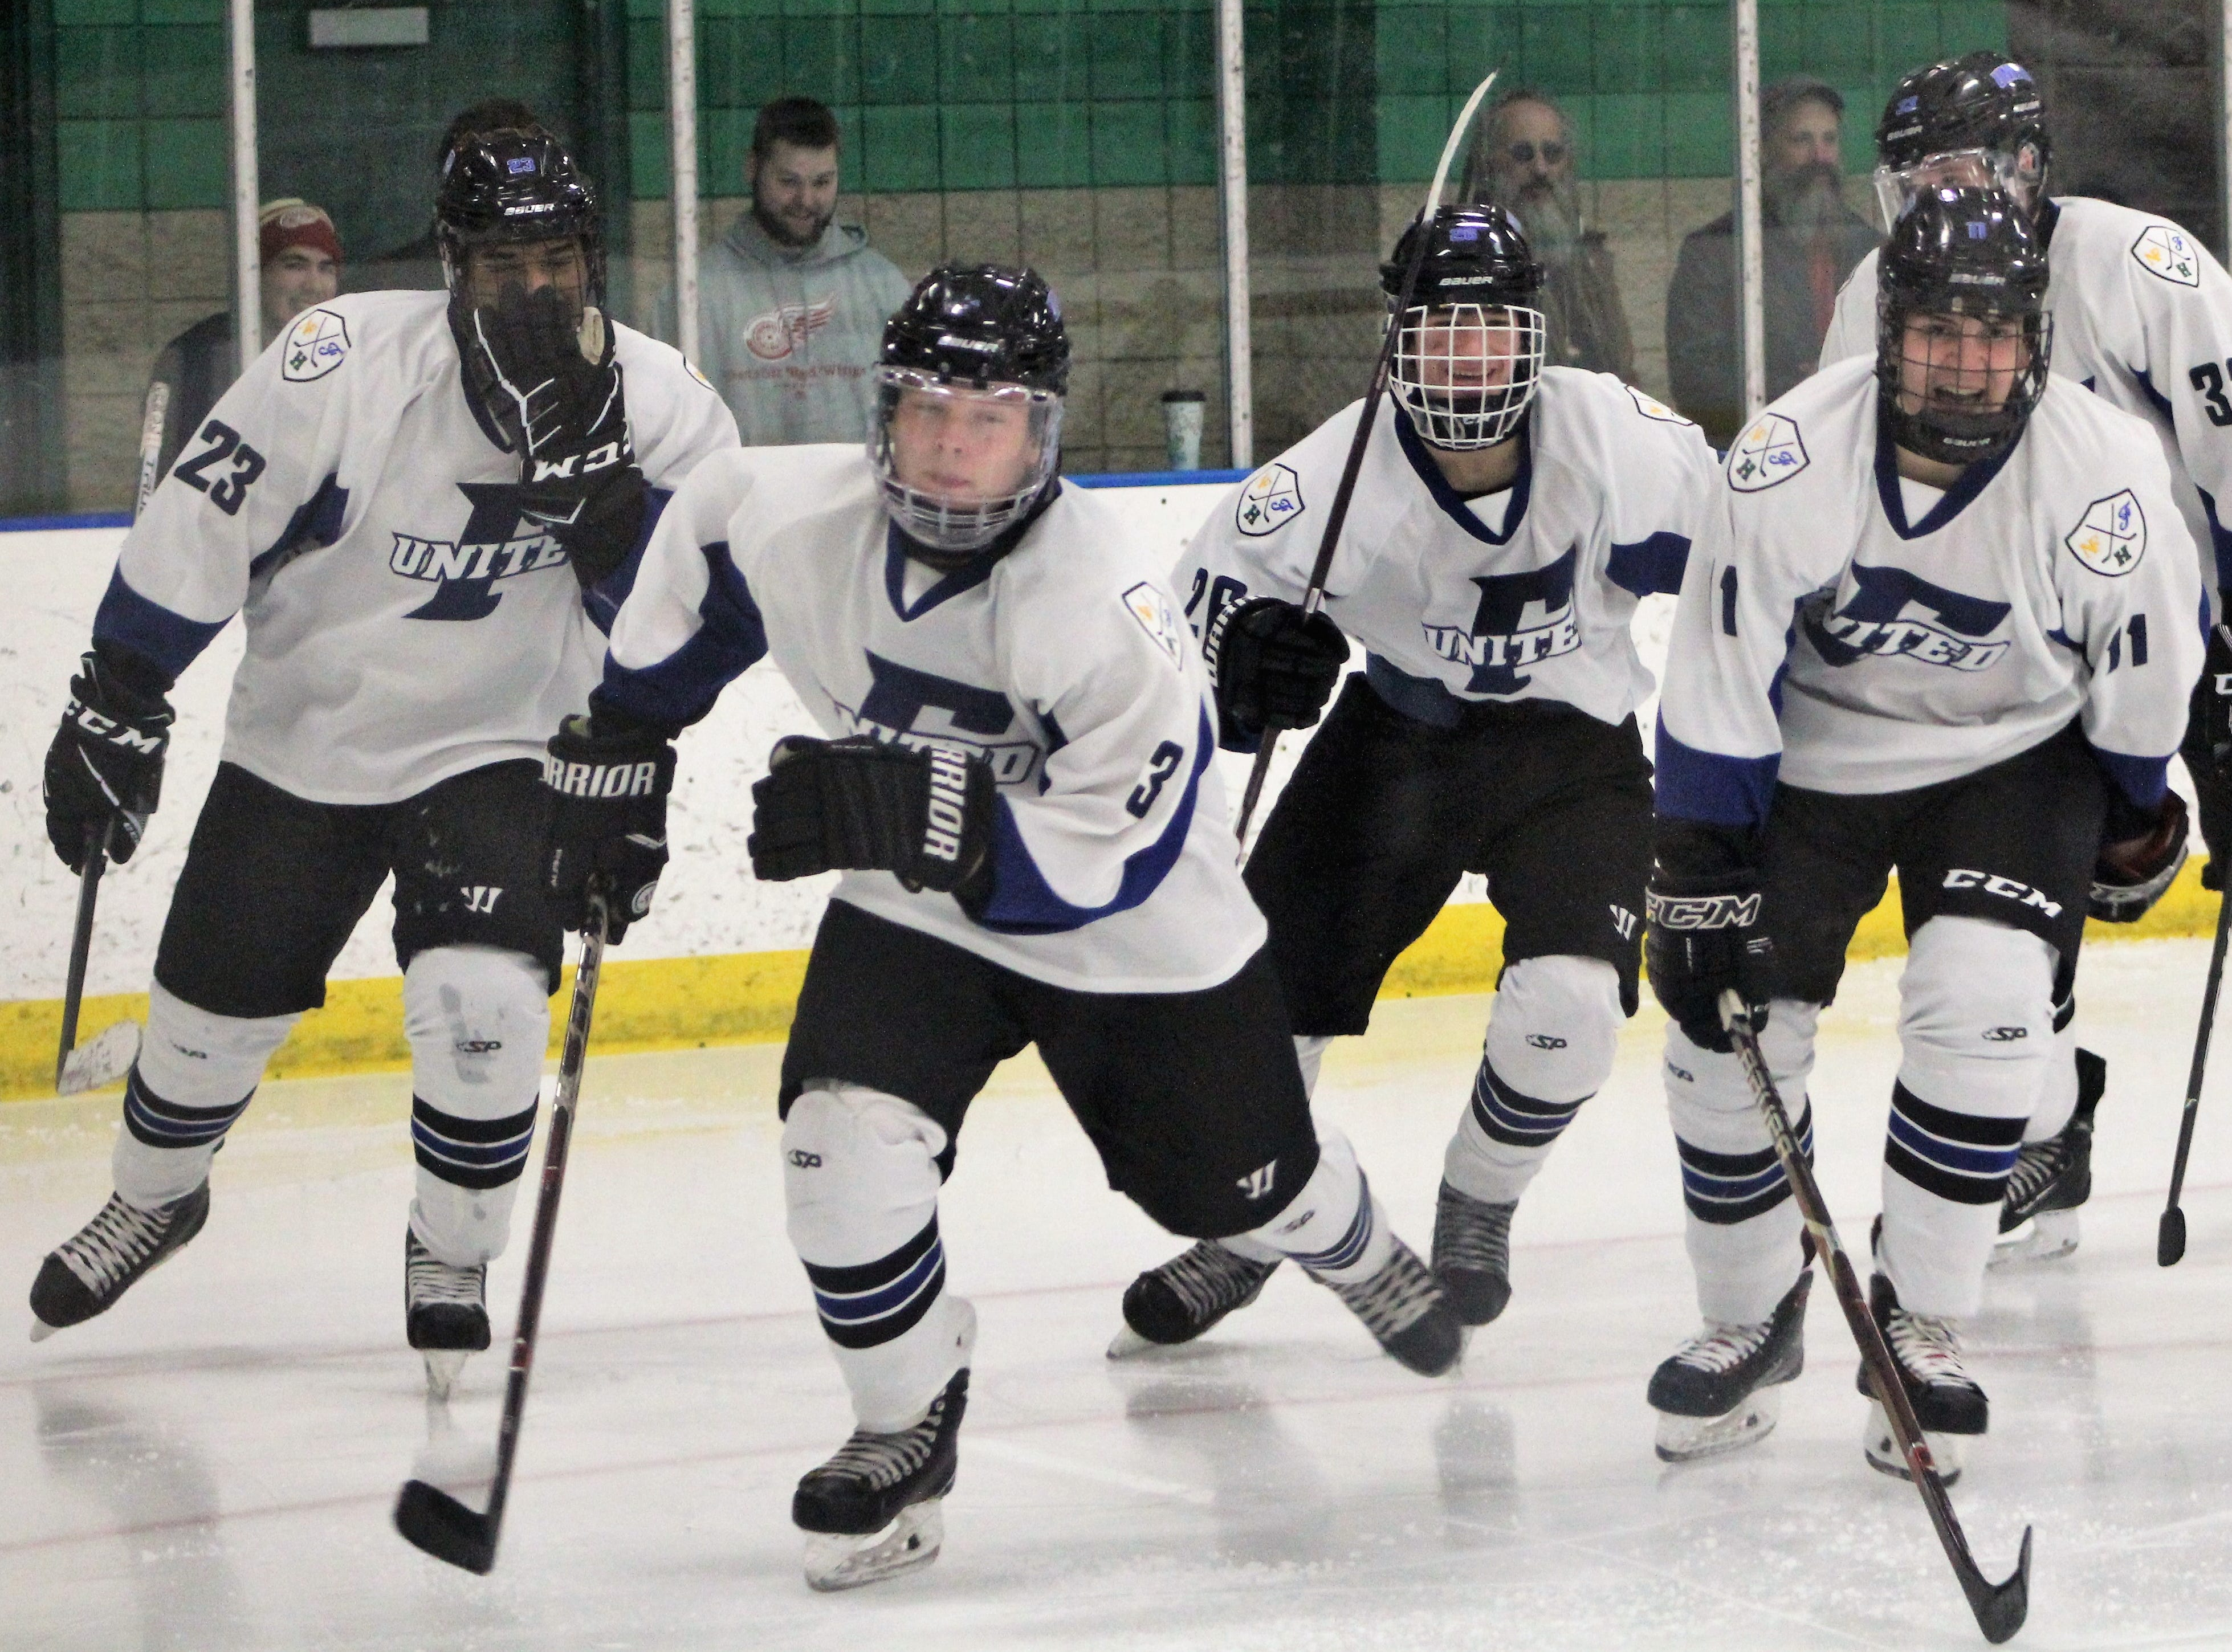 Cohesive Farmington United continues strong play with 6-2 win over Canton